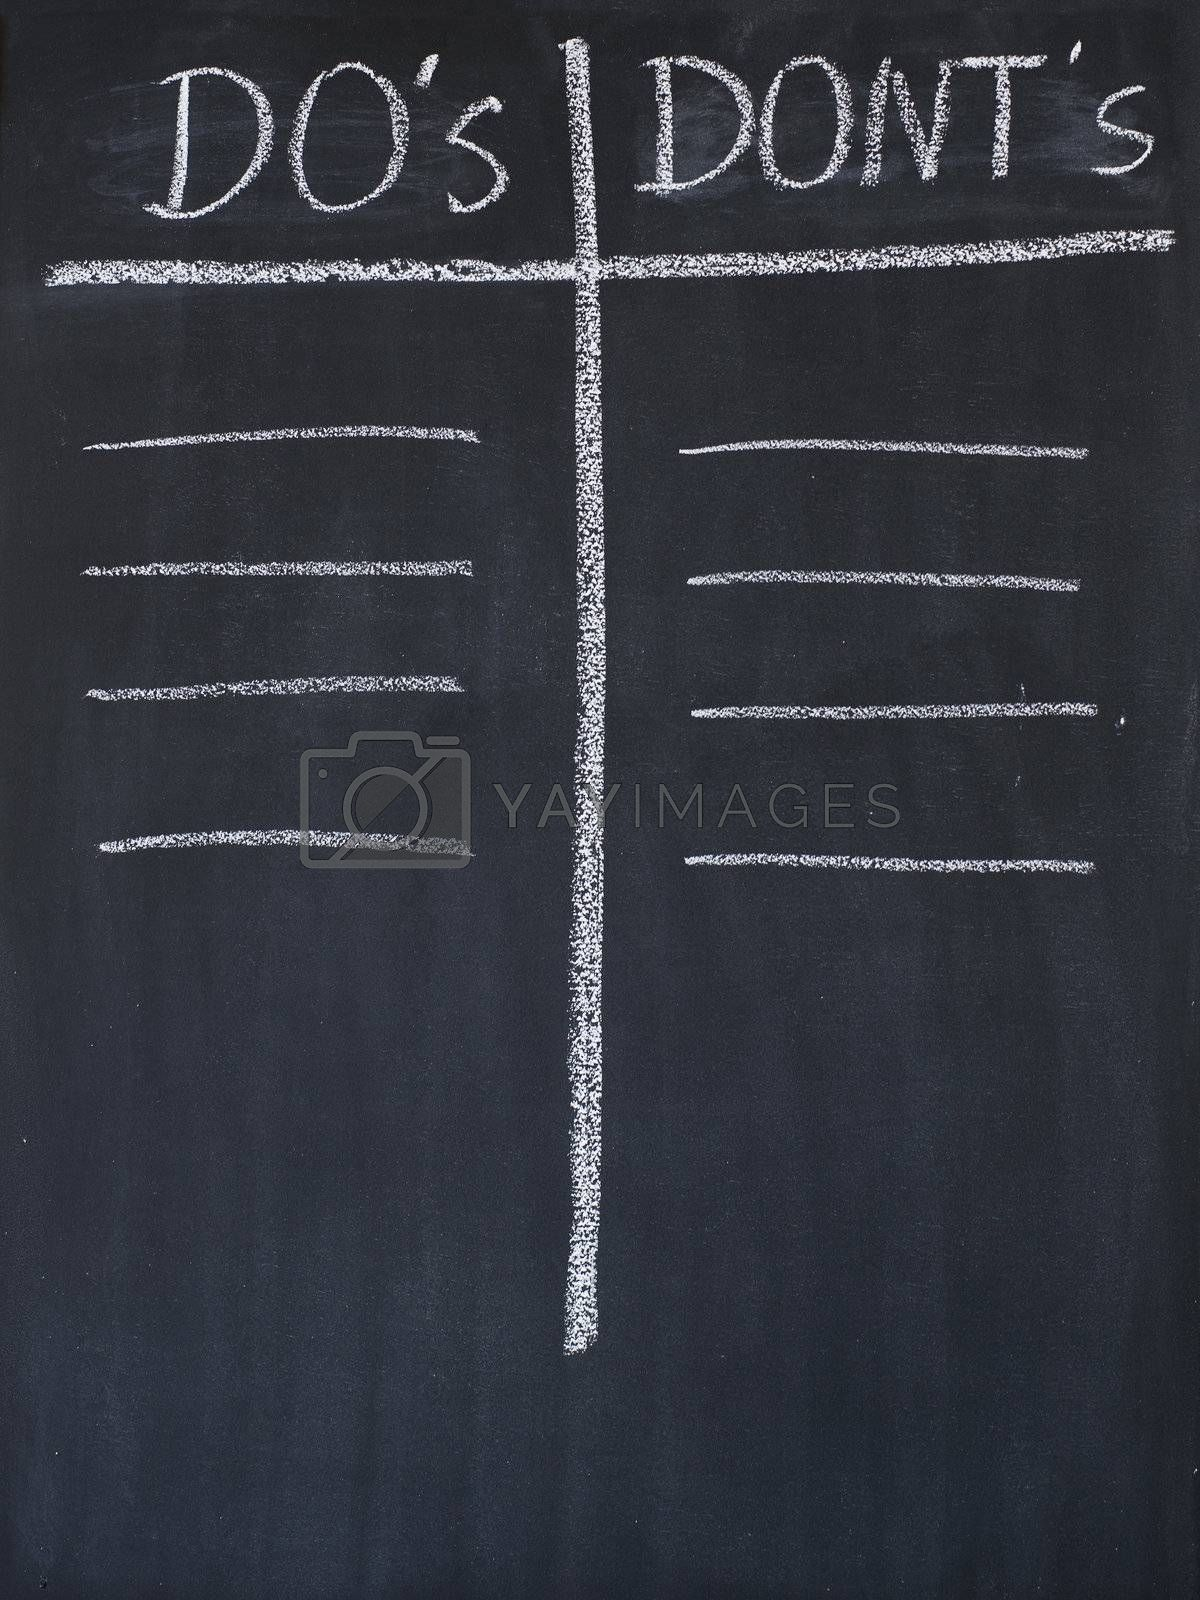 Do's and dont's list drawn on a blackboard